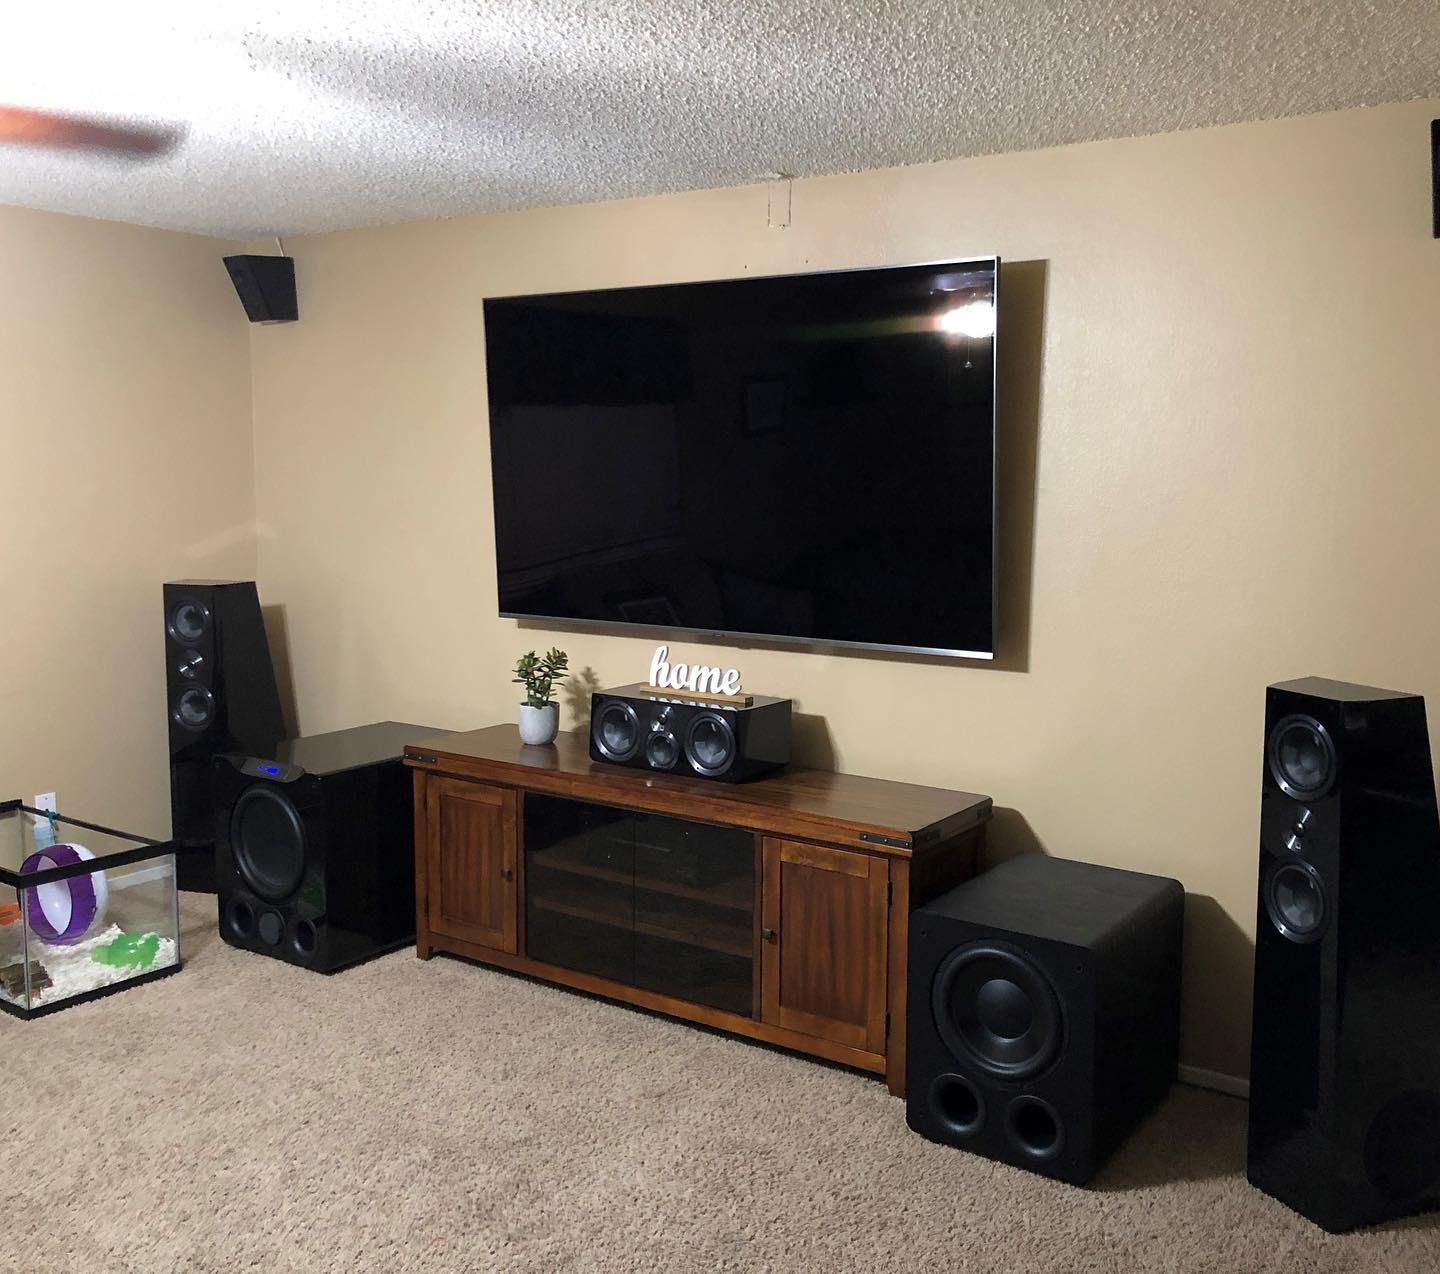 There S A Good Chance That Hamster Is Hard Of Hearing Or The Biggest Bass Head Ever Svs Pb16ultra Pb3000 Dualsubs Subwoofer Audio Design Design Subwoofer